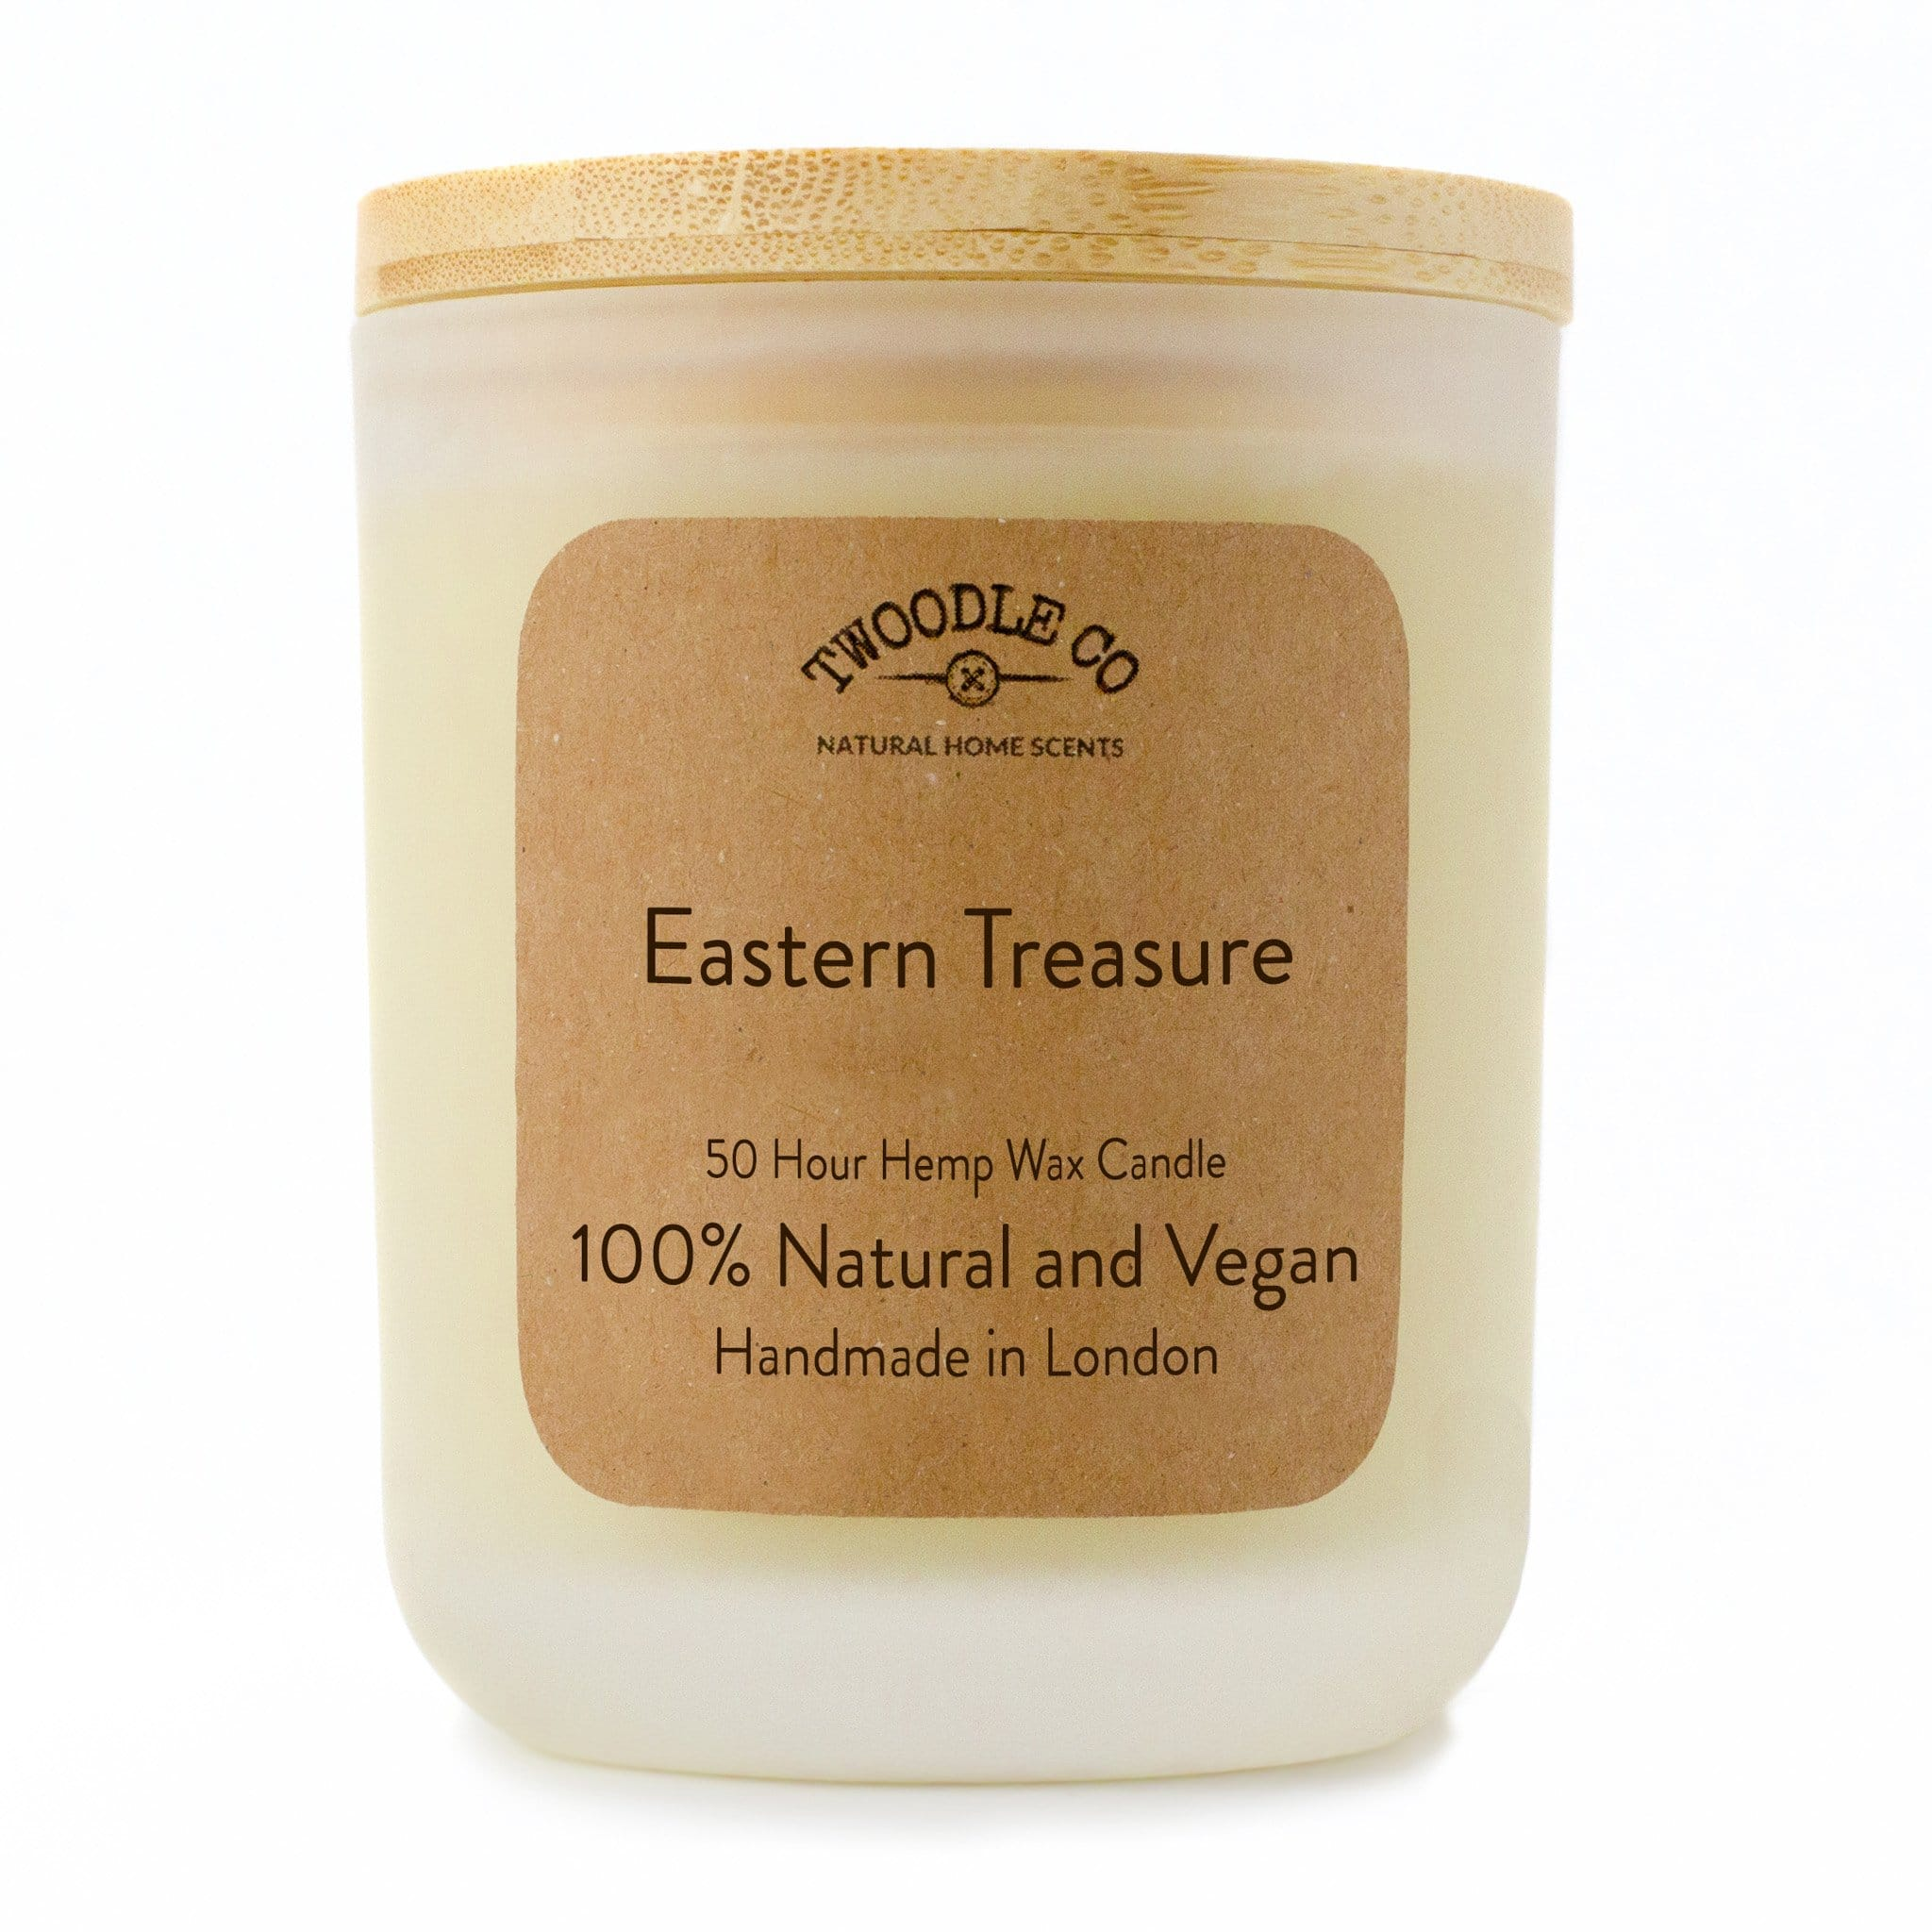 Eastern Treasure Medium Scented Candle 50 Hour